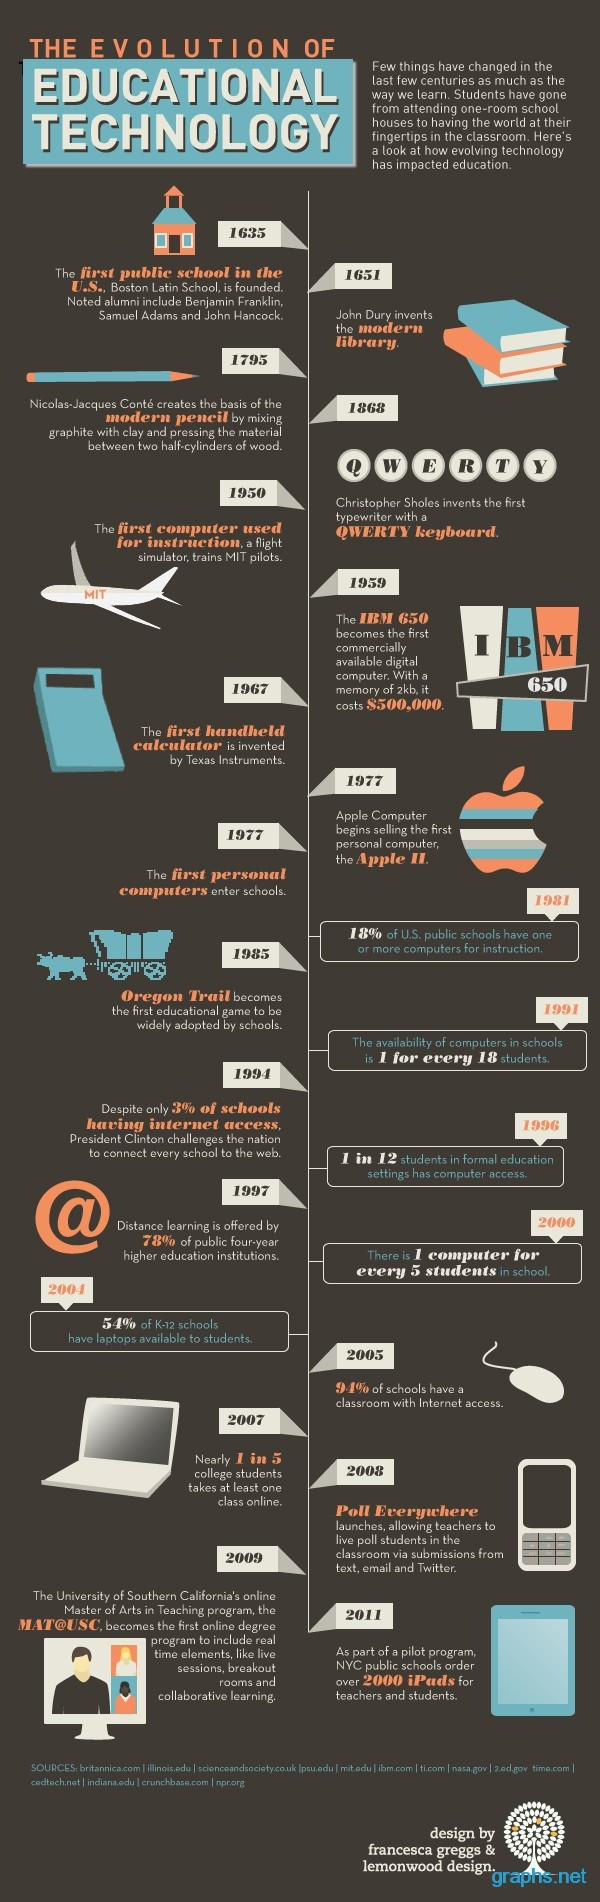 The Evolution of Educational Technology - Infographic